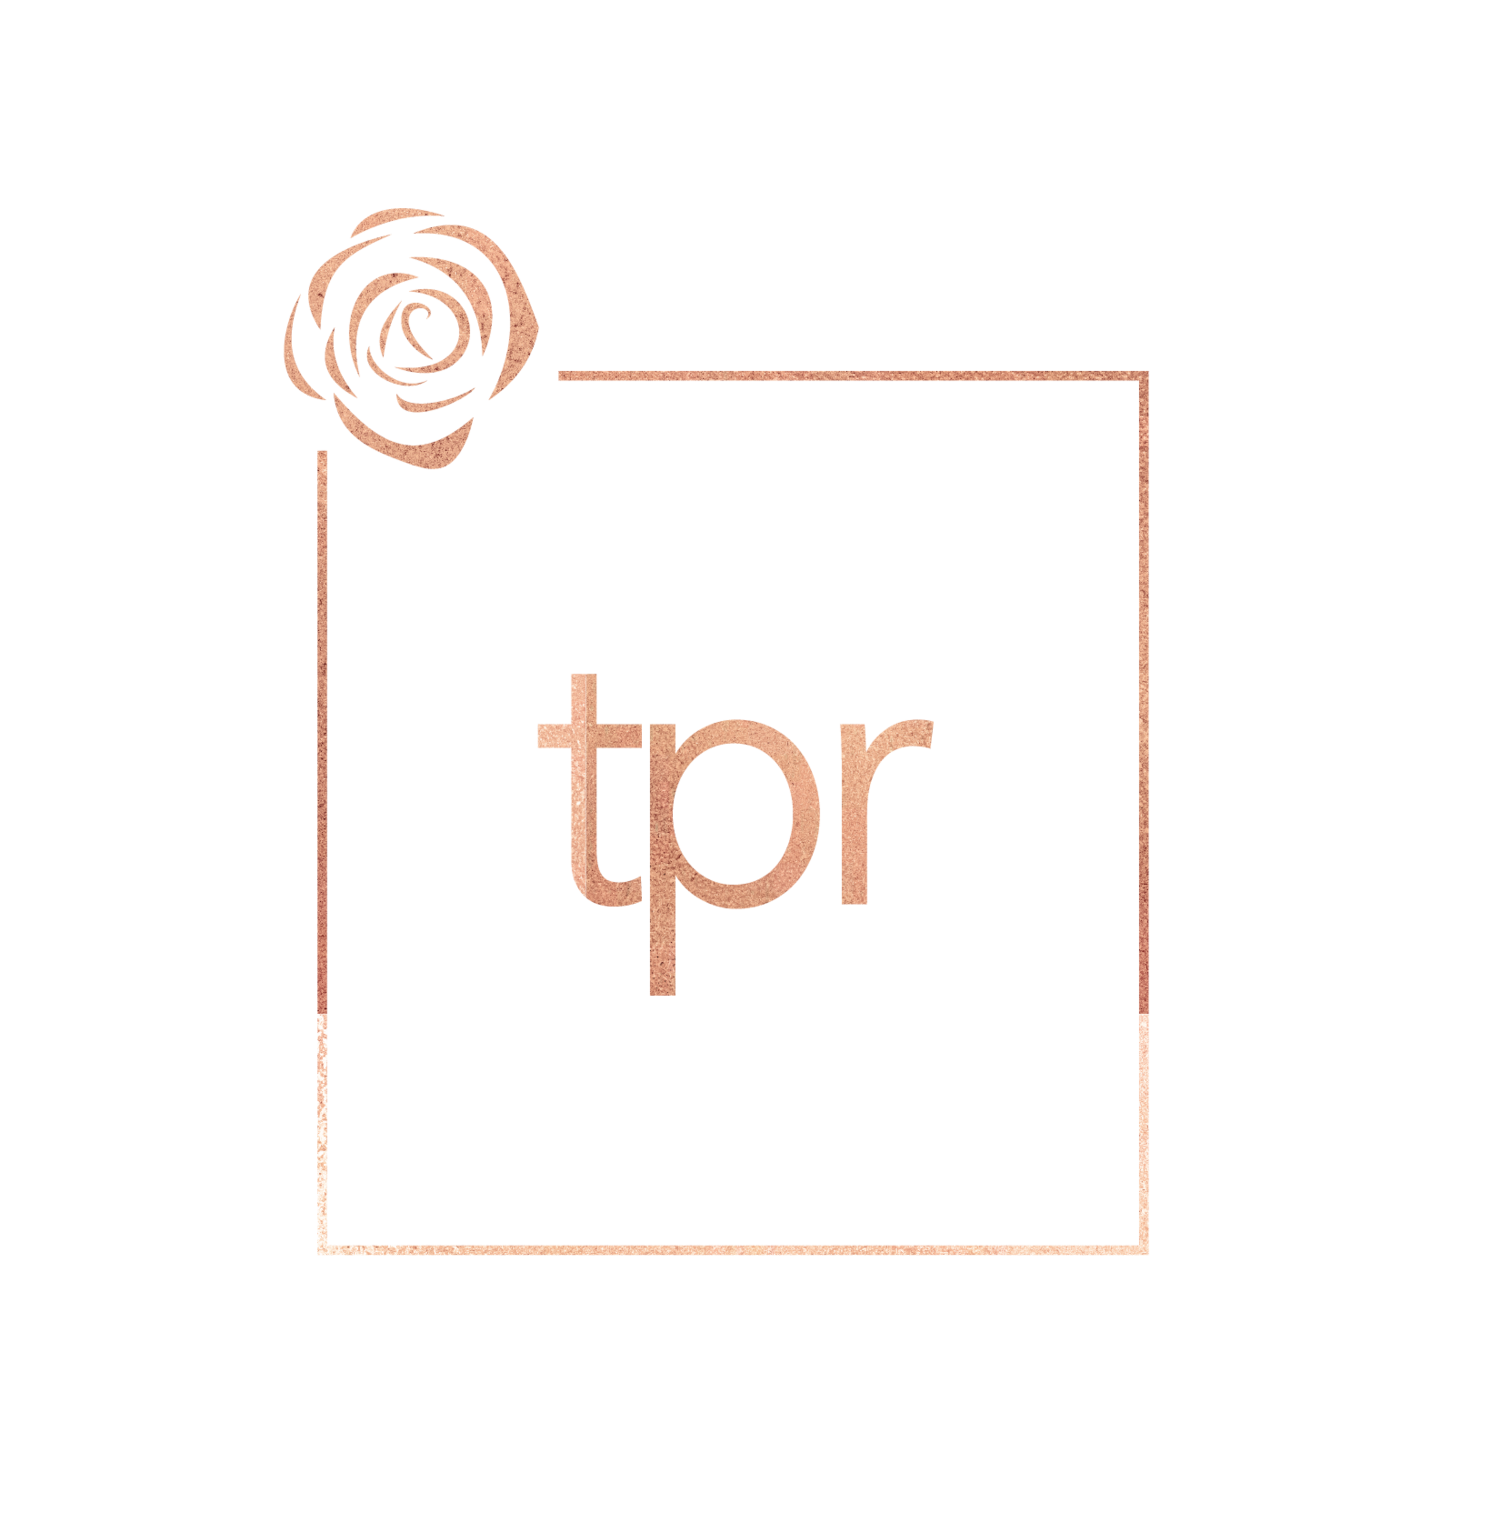 The PR Rose